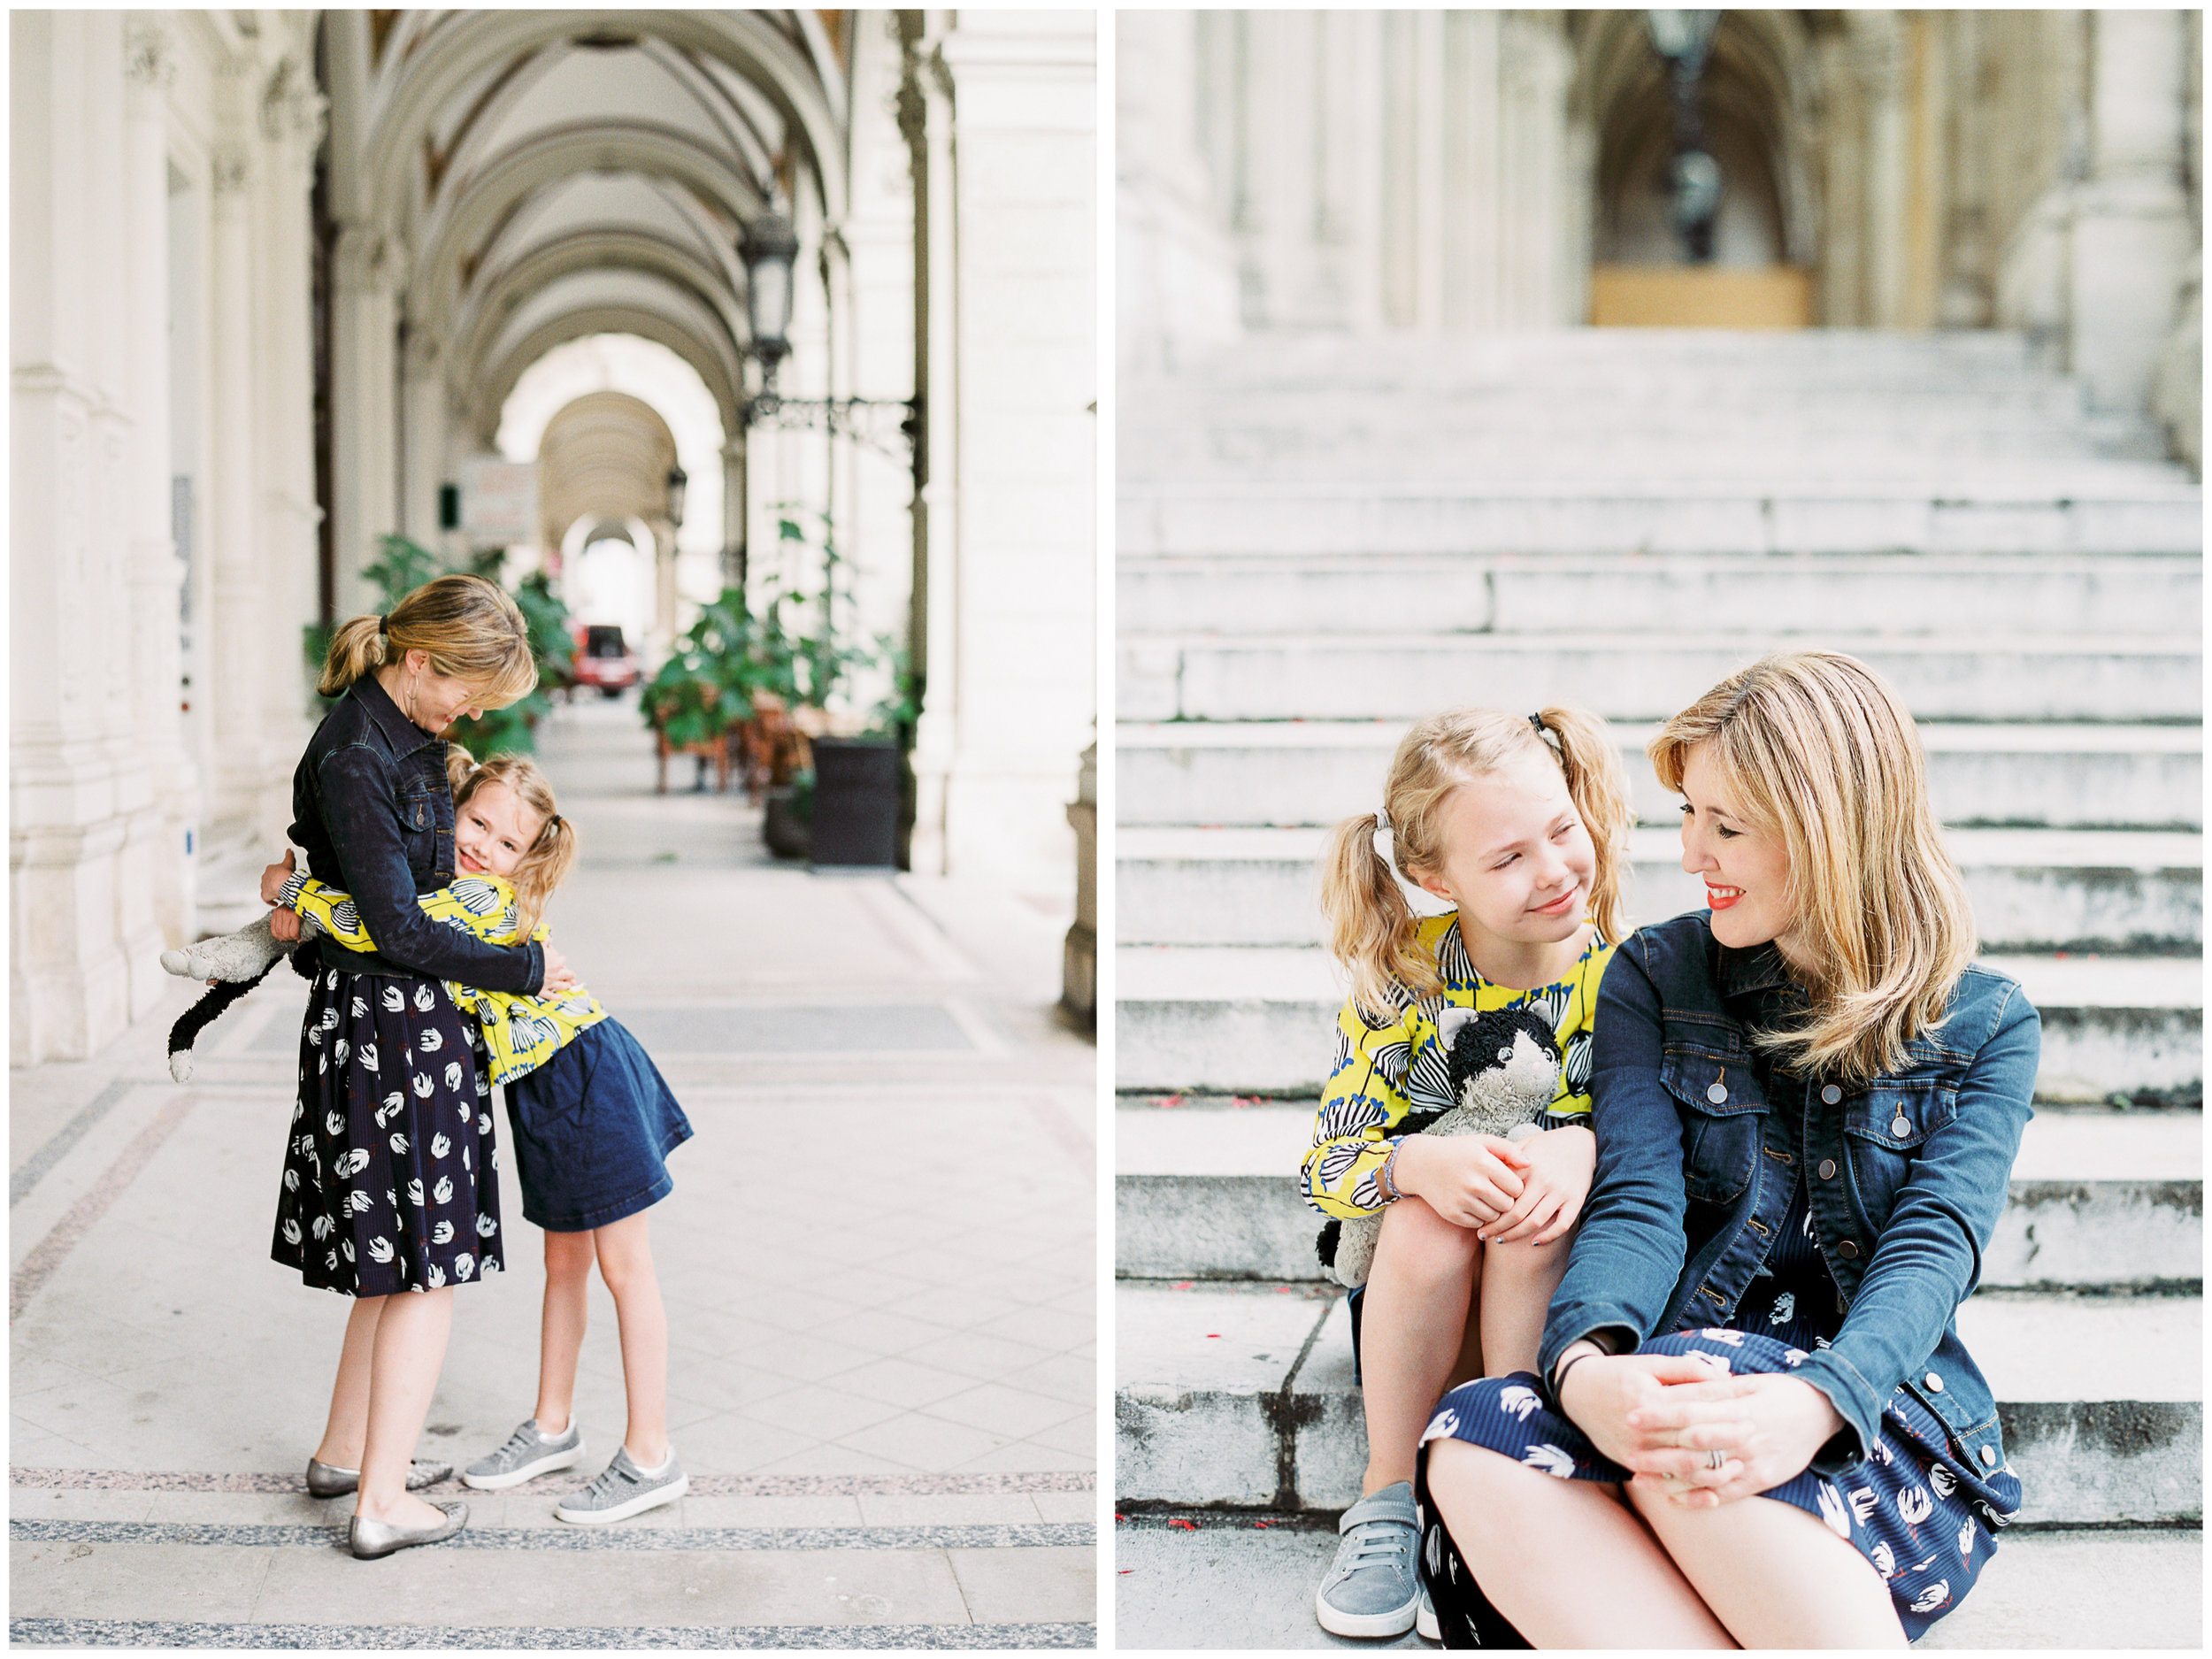 Mother and Daughter film photo session in Austria